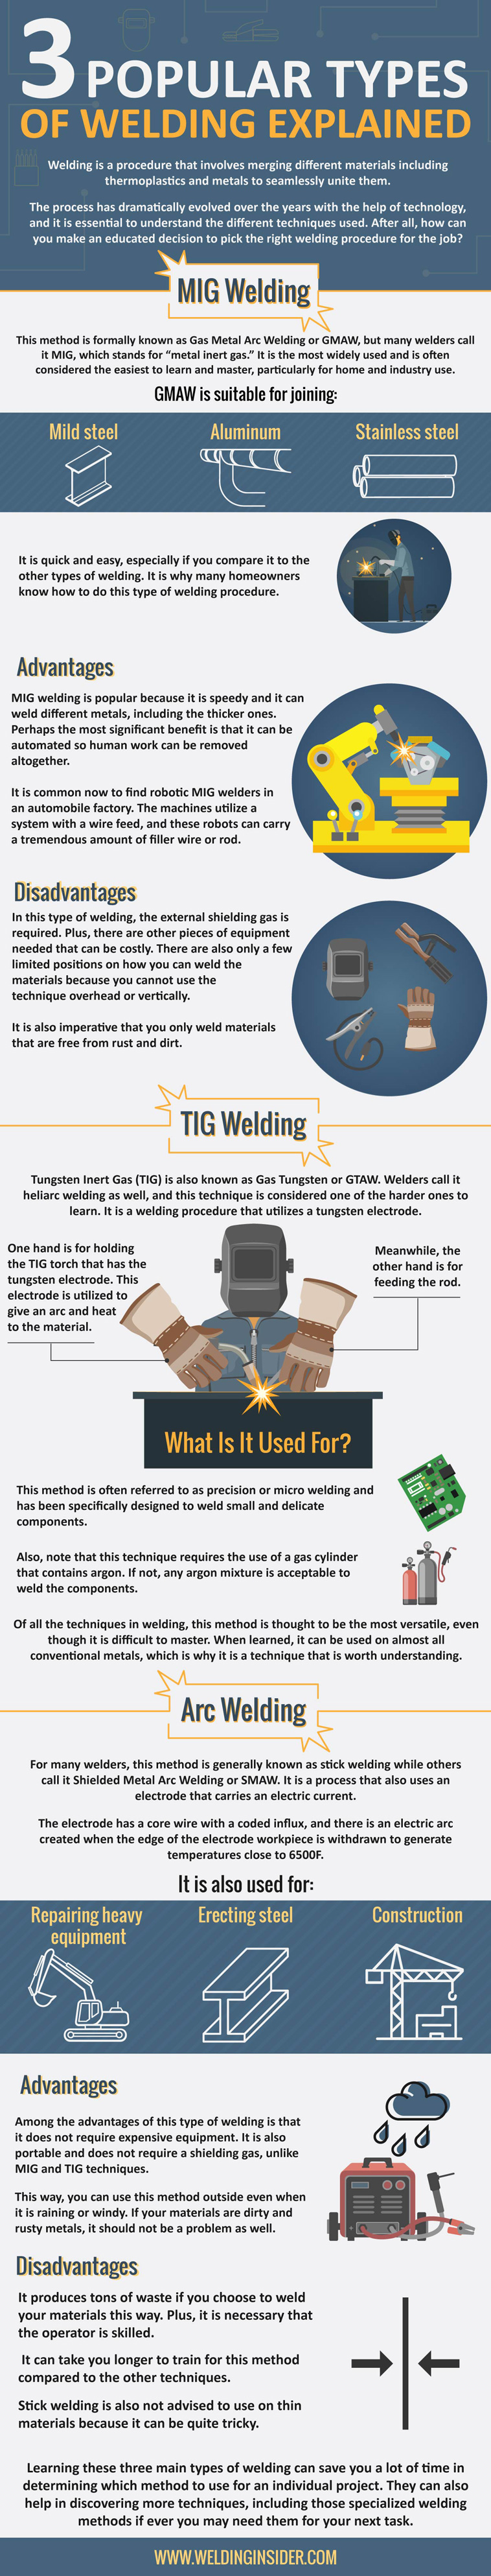 Popular Types of Welding Explained Infographic